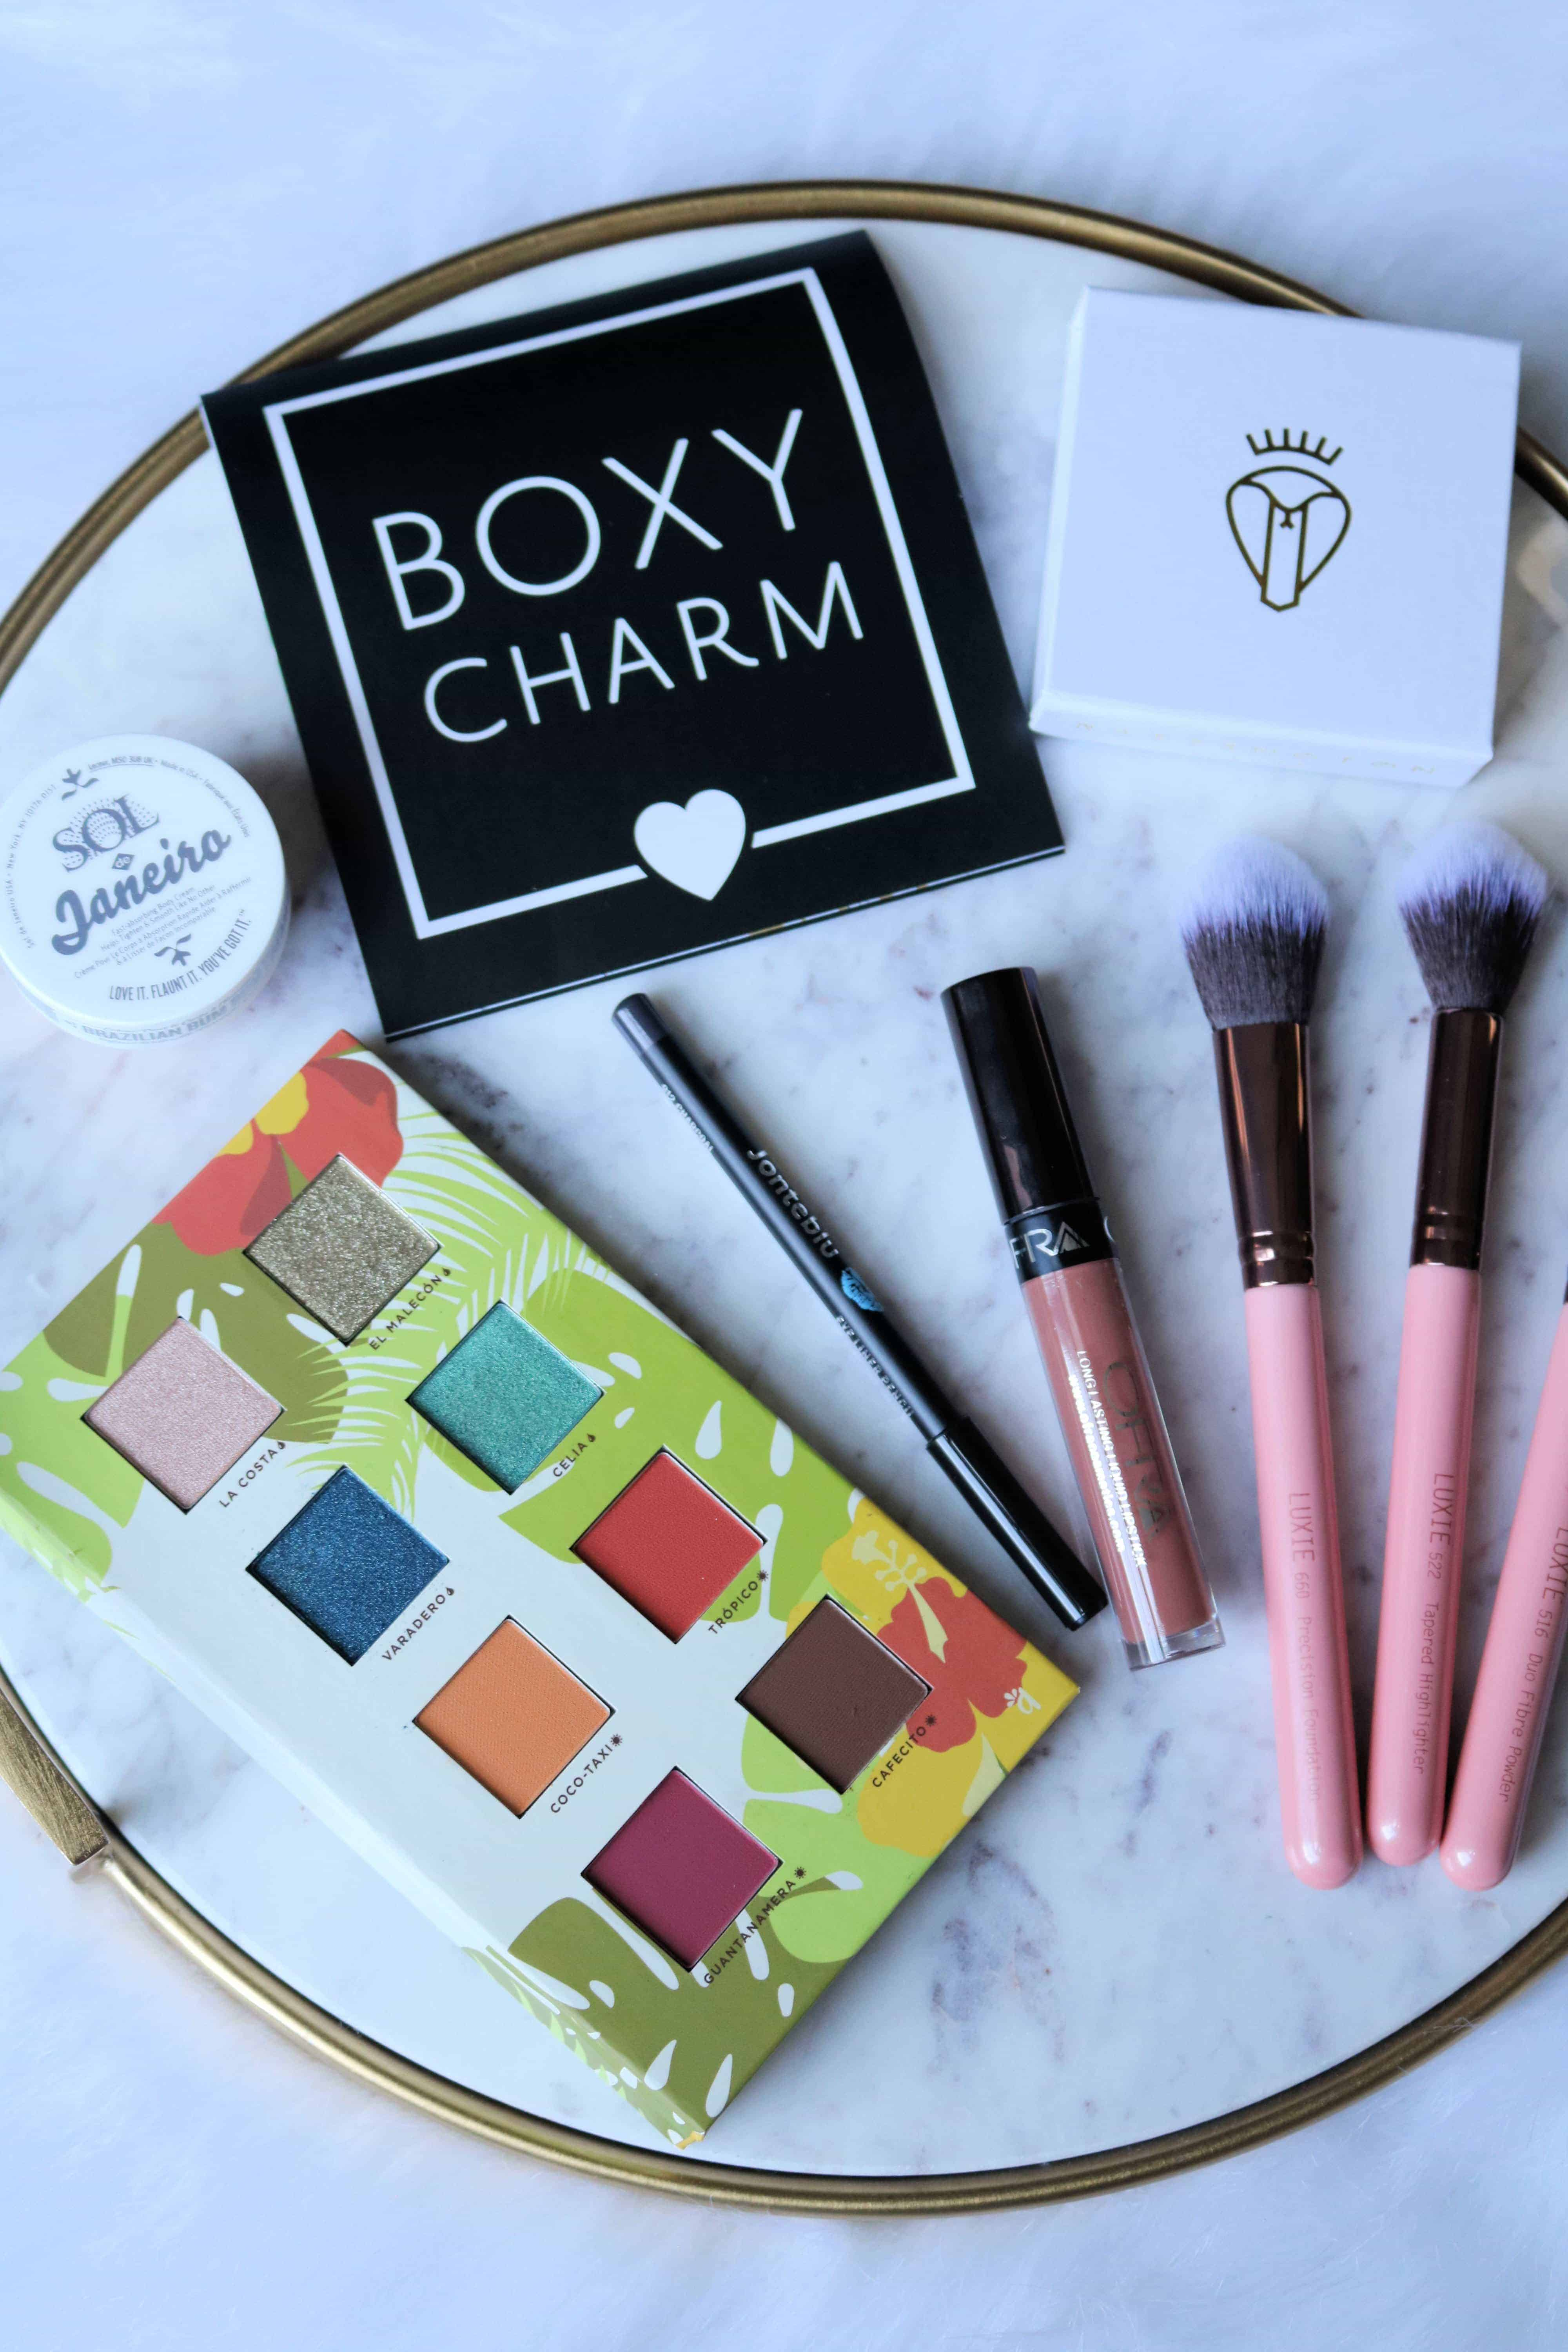 Ever wondered if a BoxyCharm monthly subscription is worth it? Then check out this honest review where I share full details on the quality of the makeup and beauty products in the June 2018 box and whether or not it's worth the money! #boxycharm #subscriptionbox #makeupreview #beautyreview